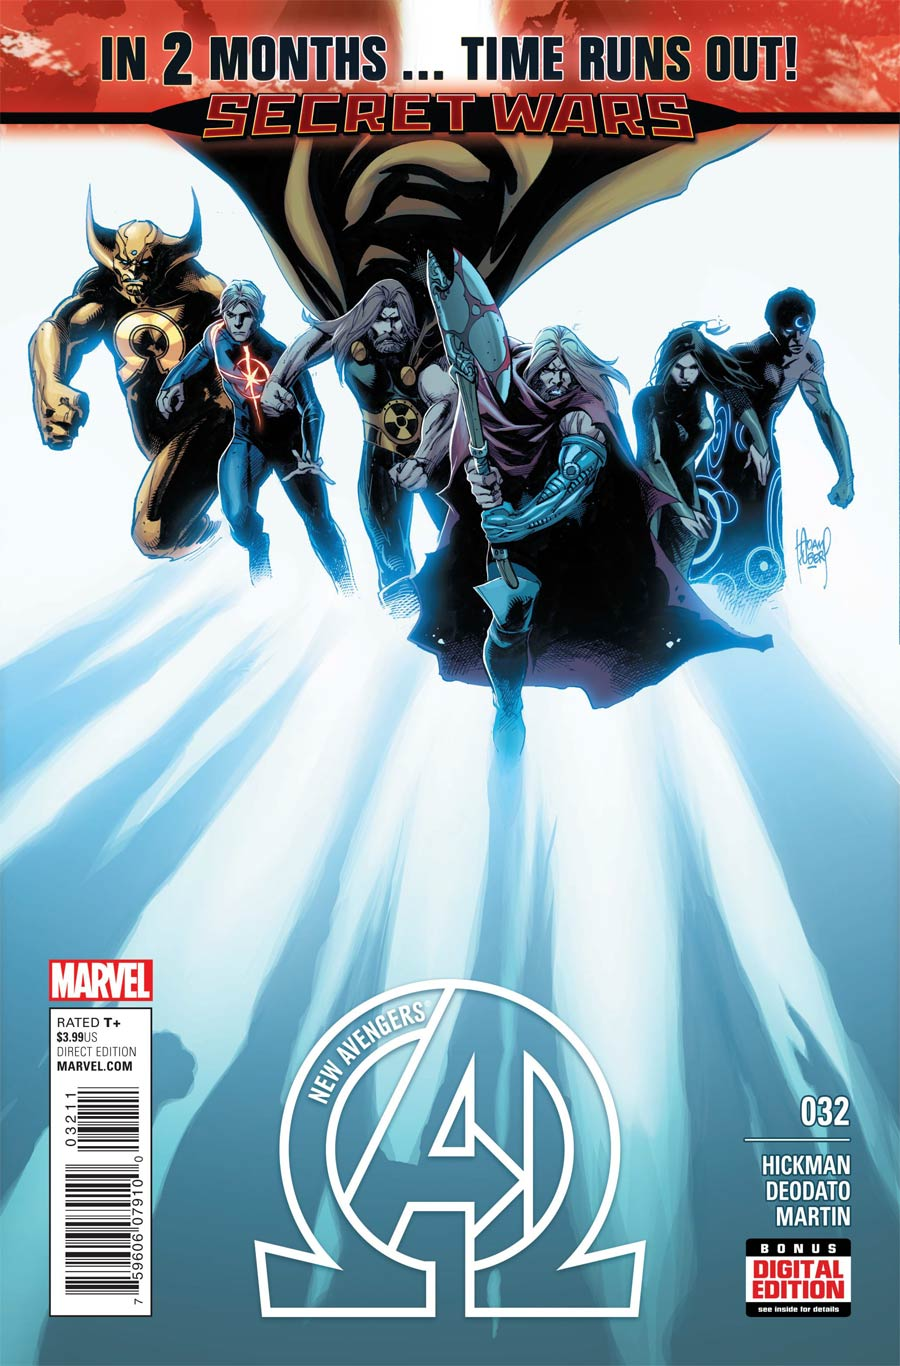 New Avengers Vol 3 #32 (Time Runs Out Tie-In)